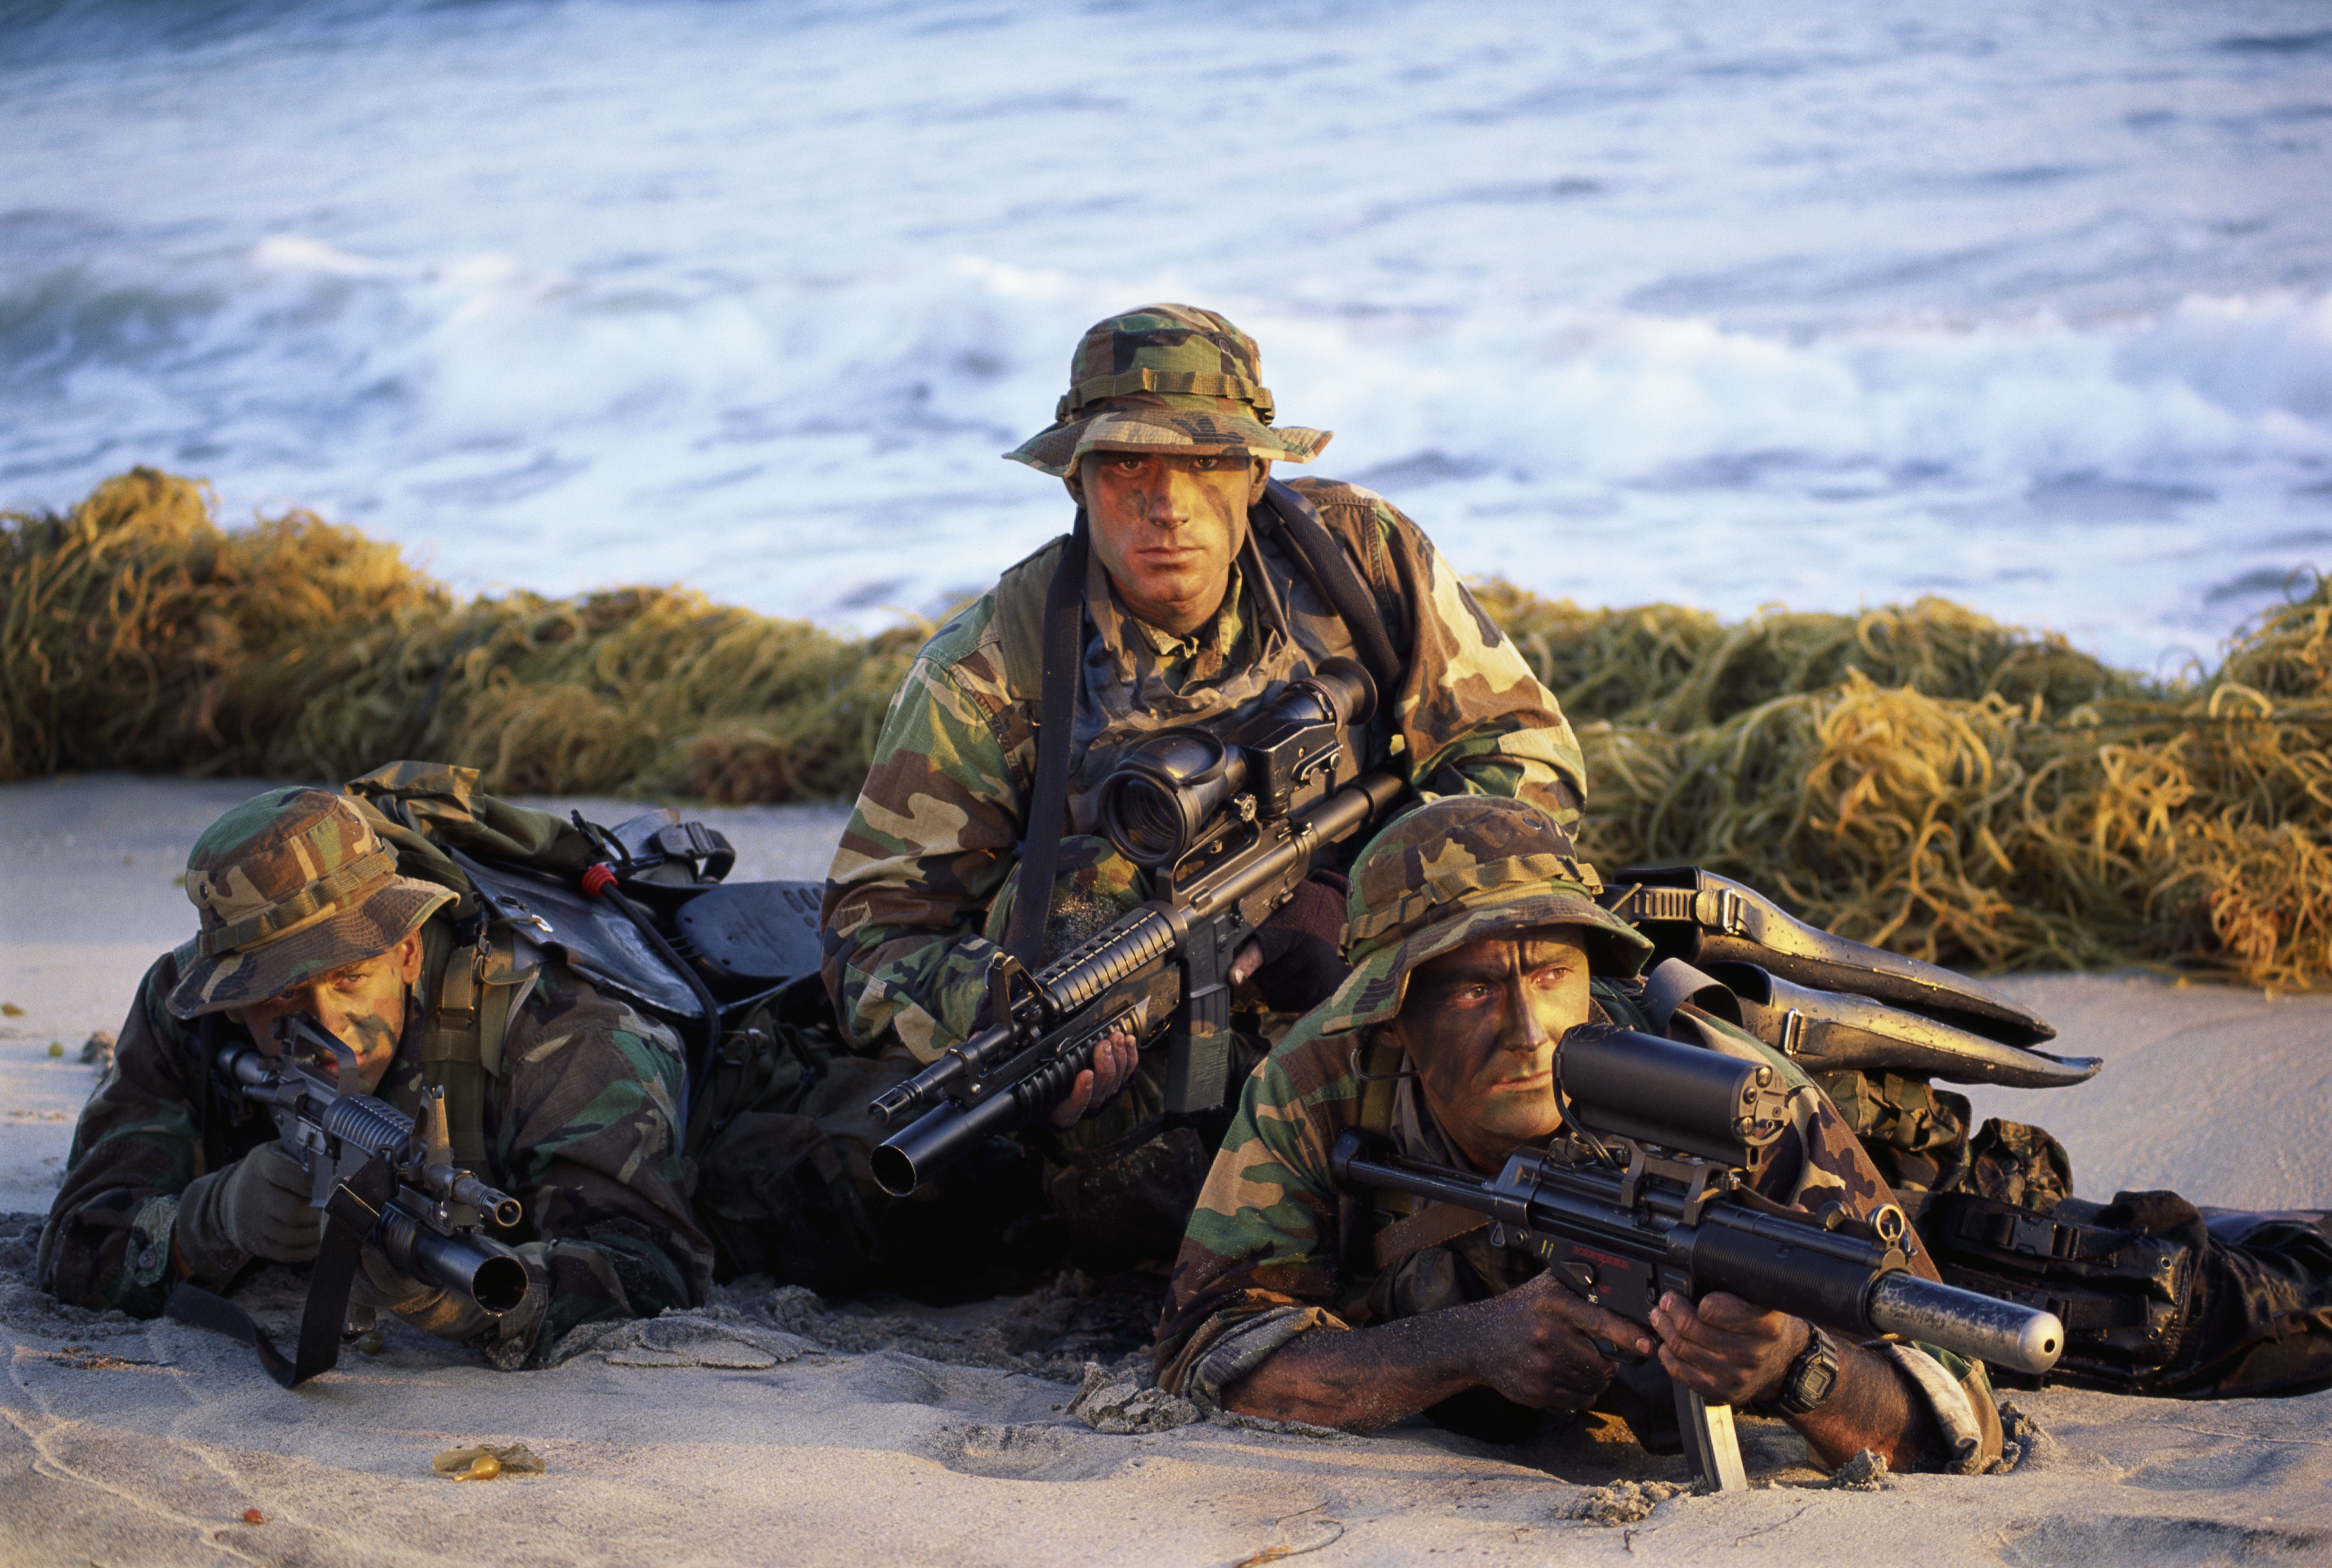 Reenlistment Requirements for the Marine Corps | Career Trend